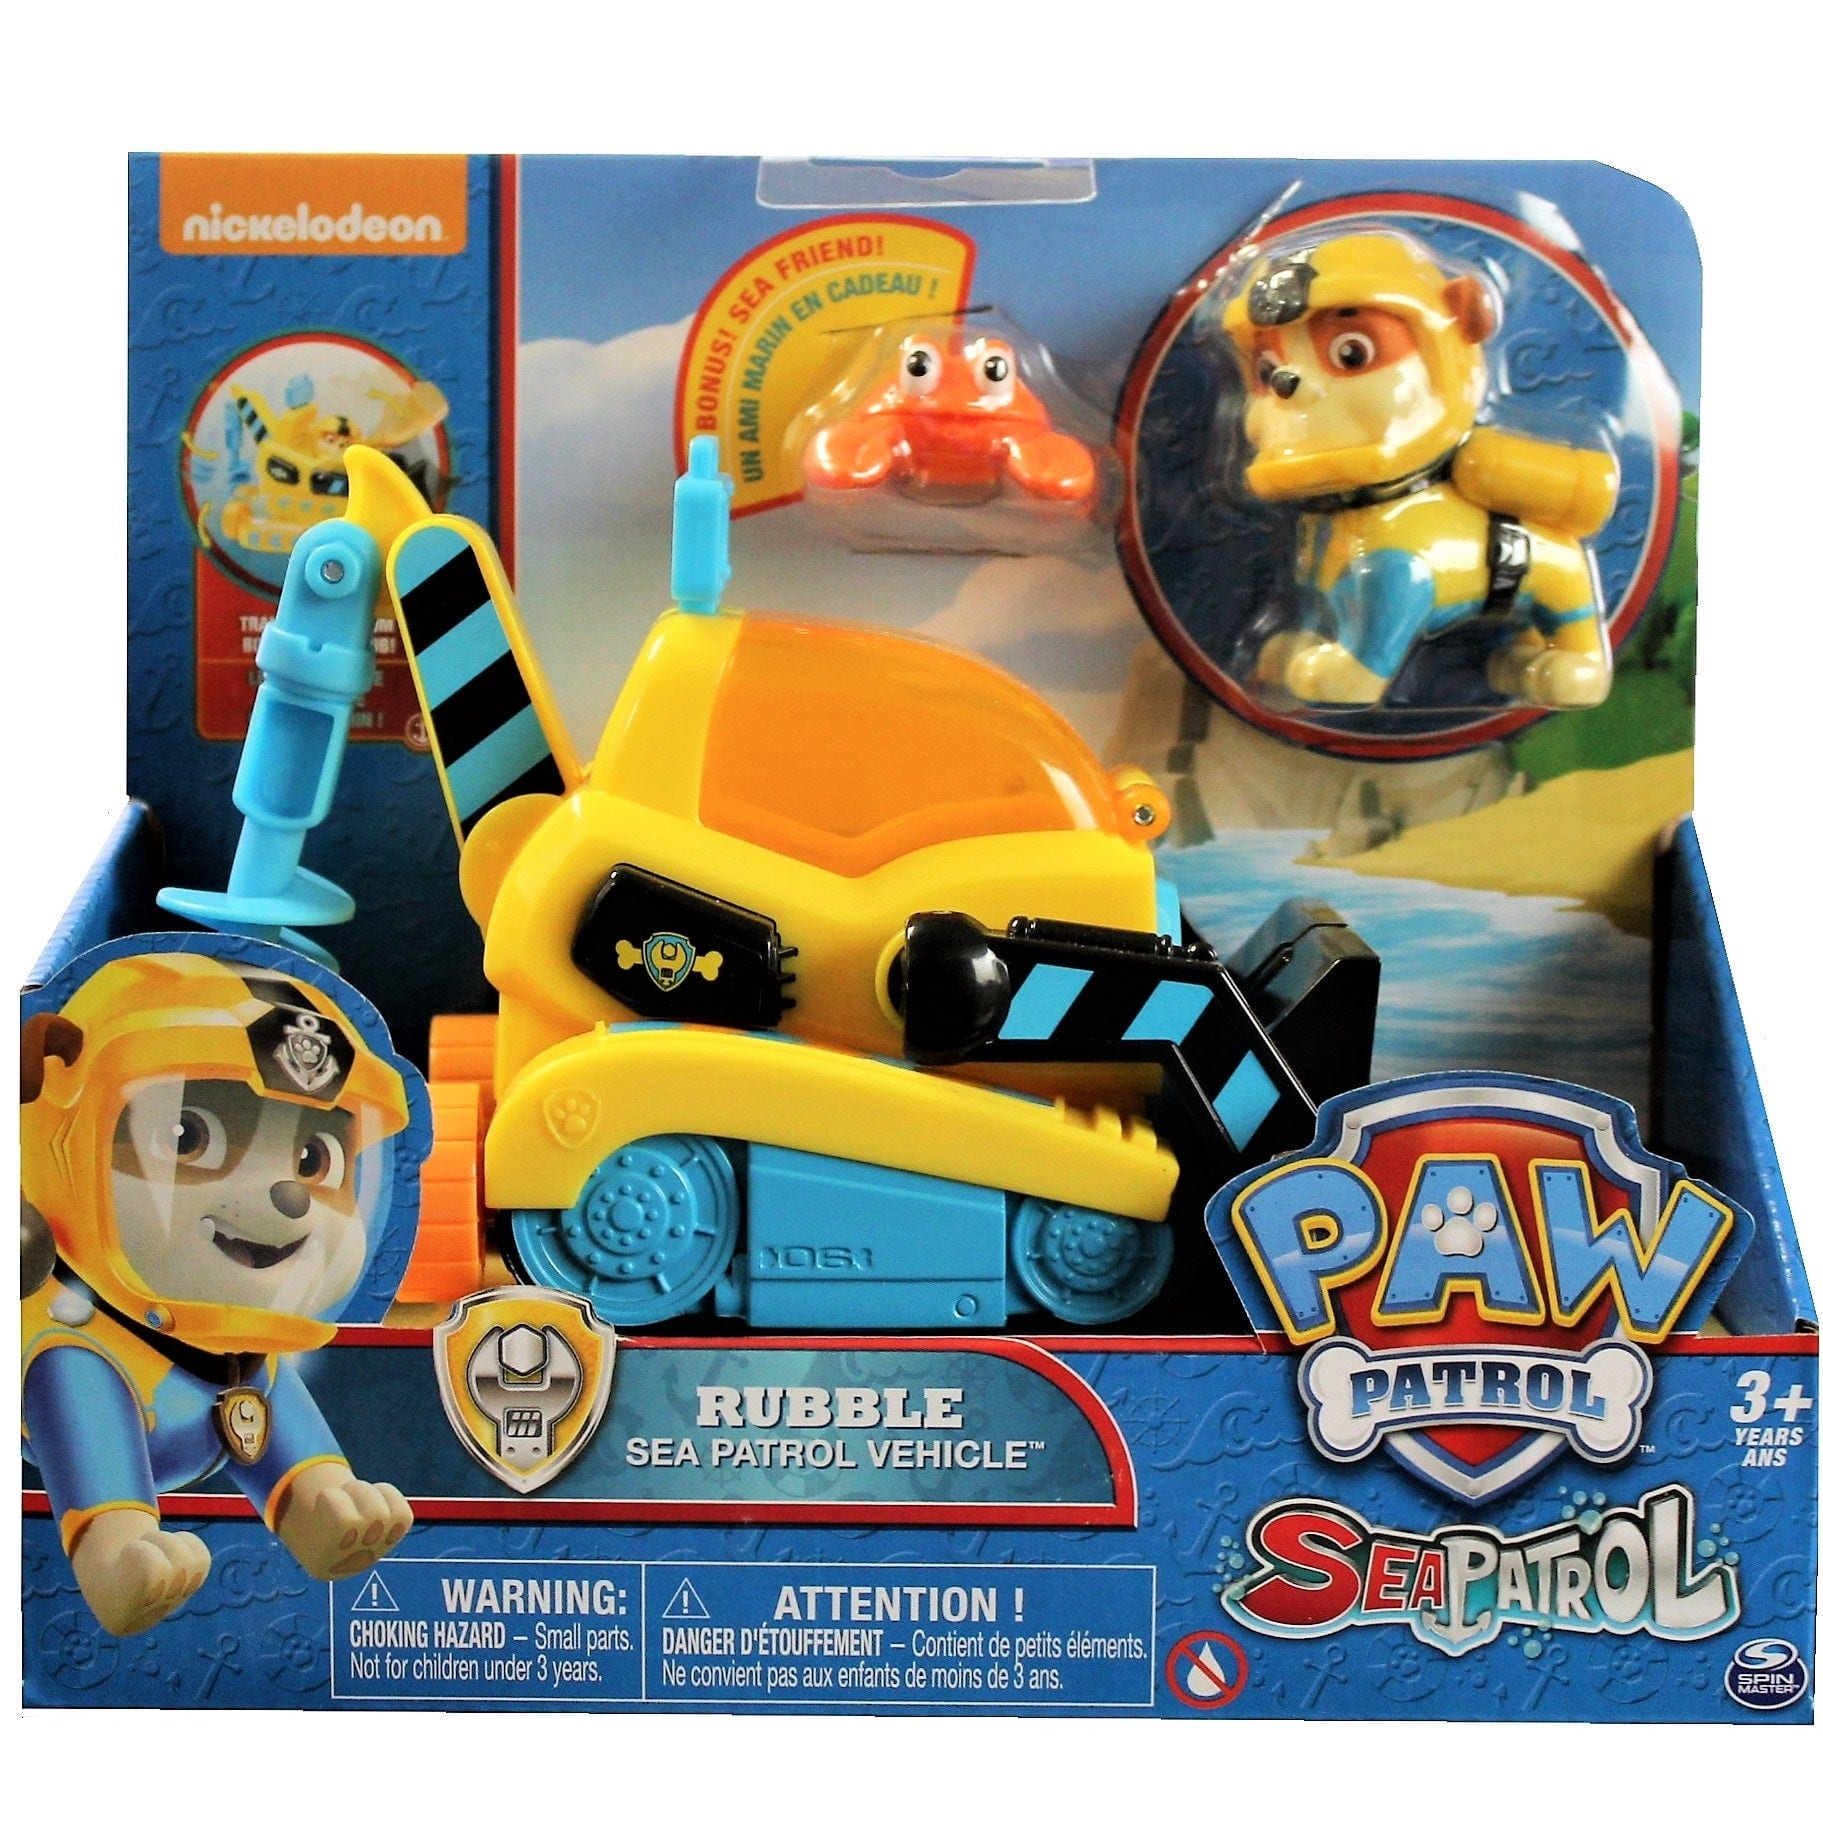 Paw Patrol Sea Patrol Basic Themed Vehicle - Rubble